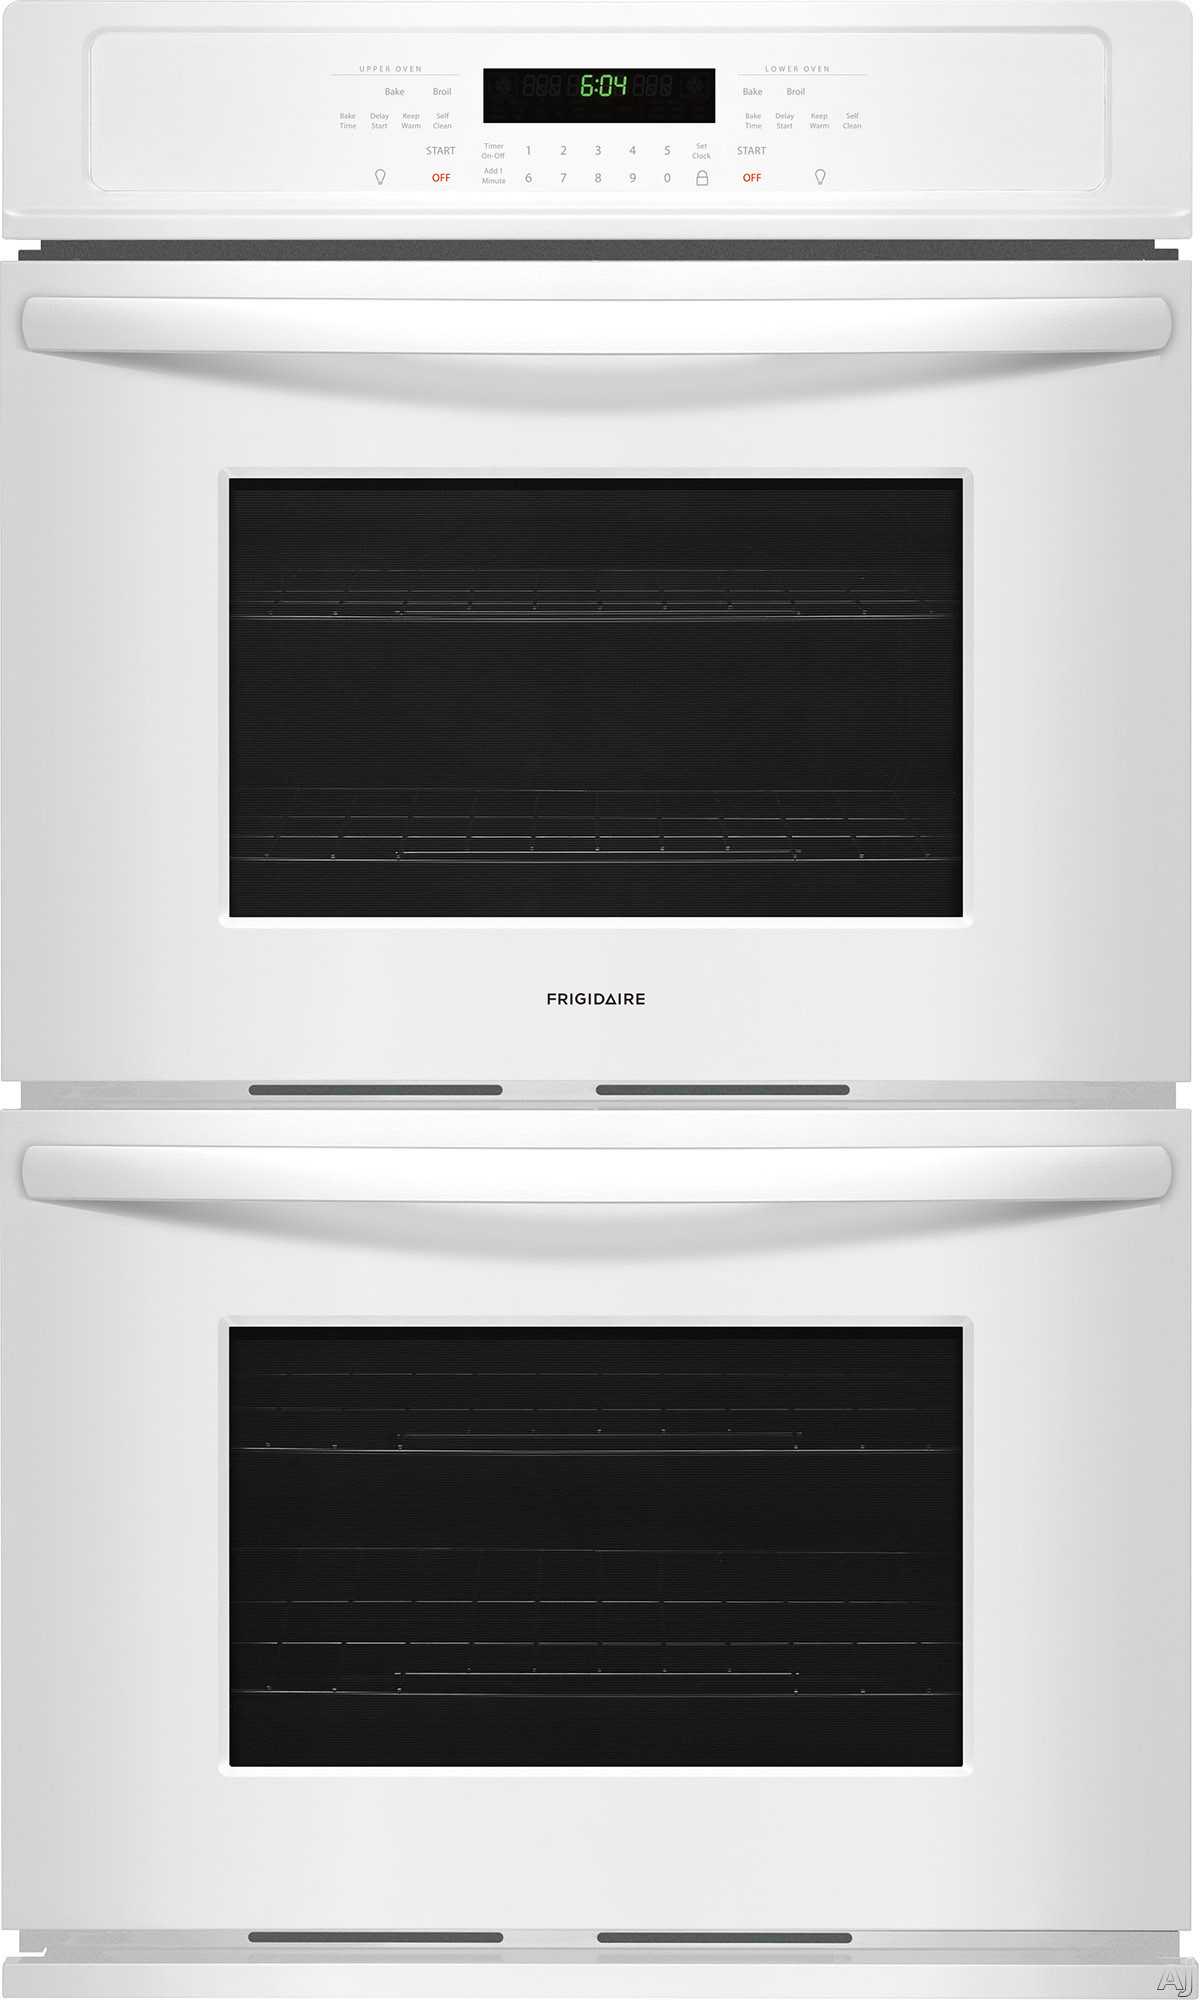 Frigidaire FFET2726TW 27 Inch Electric Double Wall Oven with Vari-Broil™ Temperature Control, Ready-Select® Controls, Even Baking Technology, Self-Cleaning, Delay Bake, Star-K® Certified S